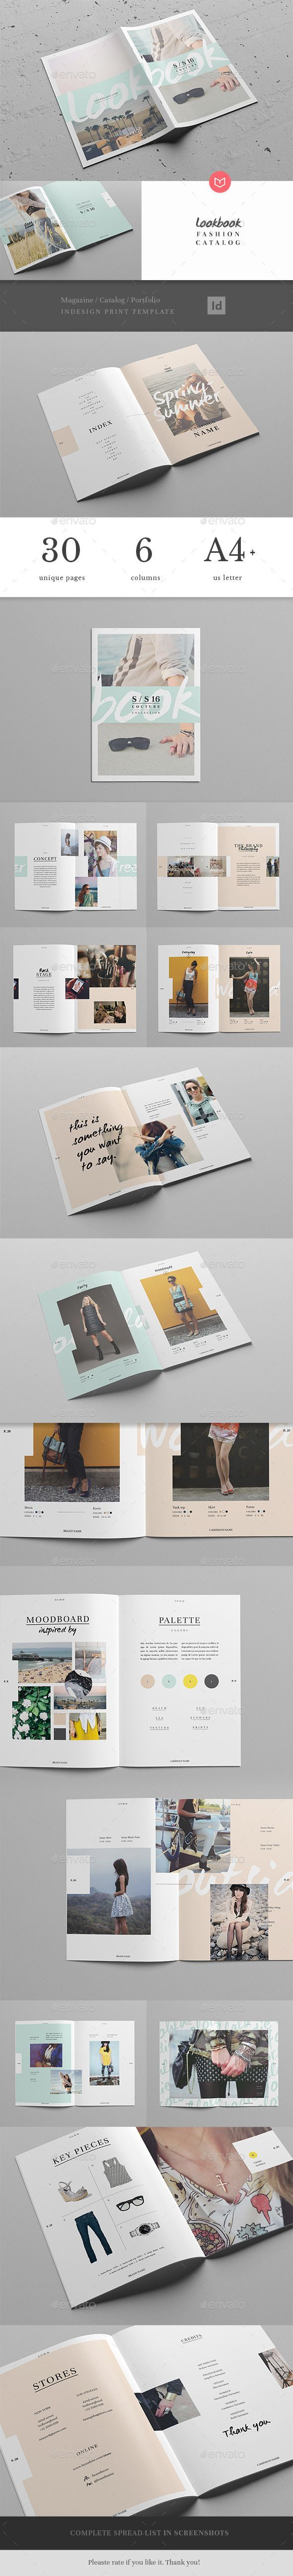 Lookbook / Fashion Magazine + Catalogue Template #design Download: http://graphicriver.net/item/lookbook-fashion-magazine-catalogue/12444832?ref=ksioks